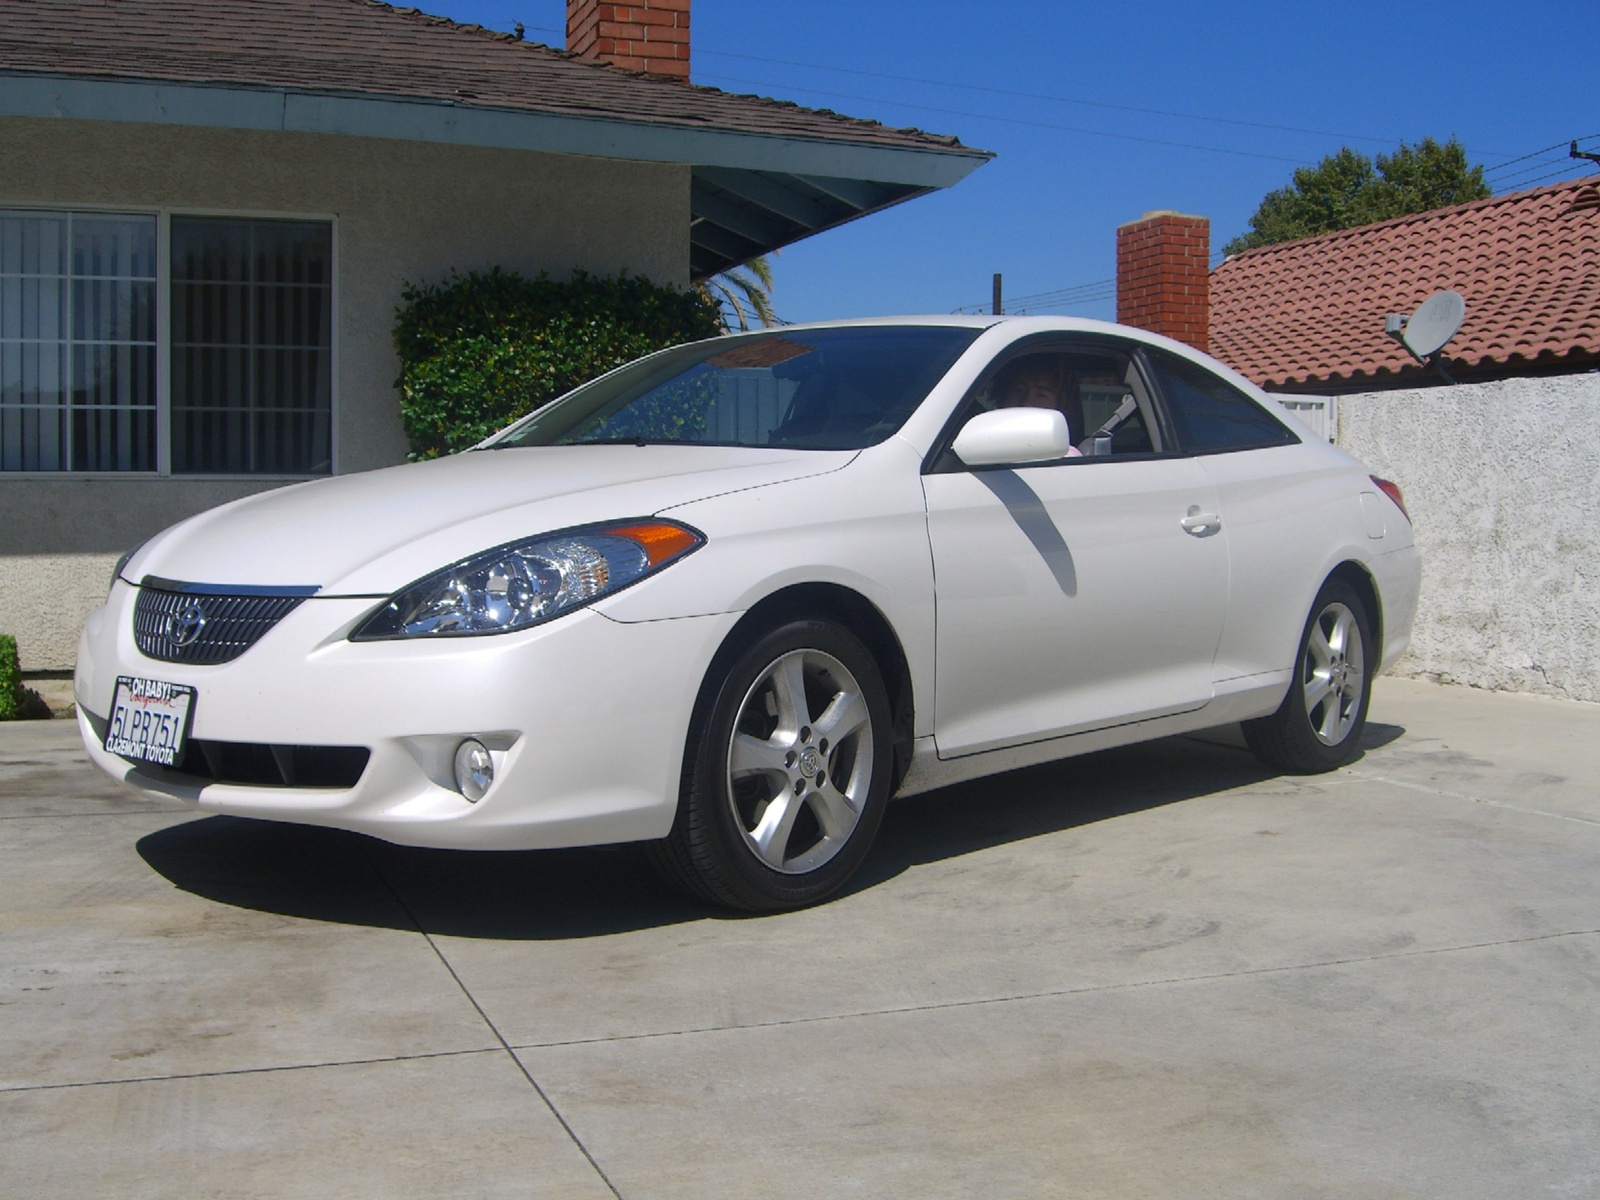 Picture of 2005 Toyota Camry Solara SLE V6